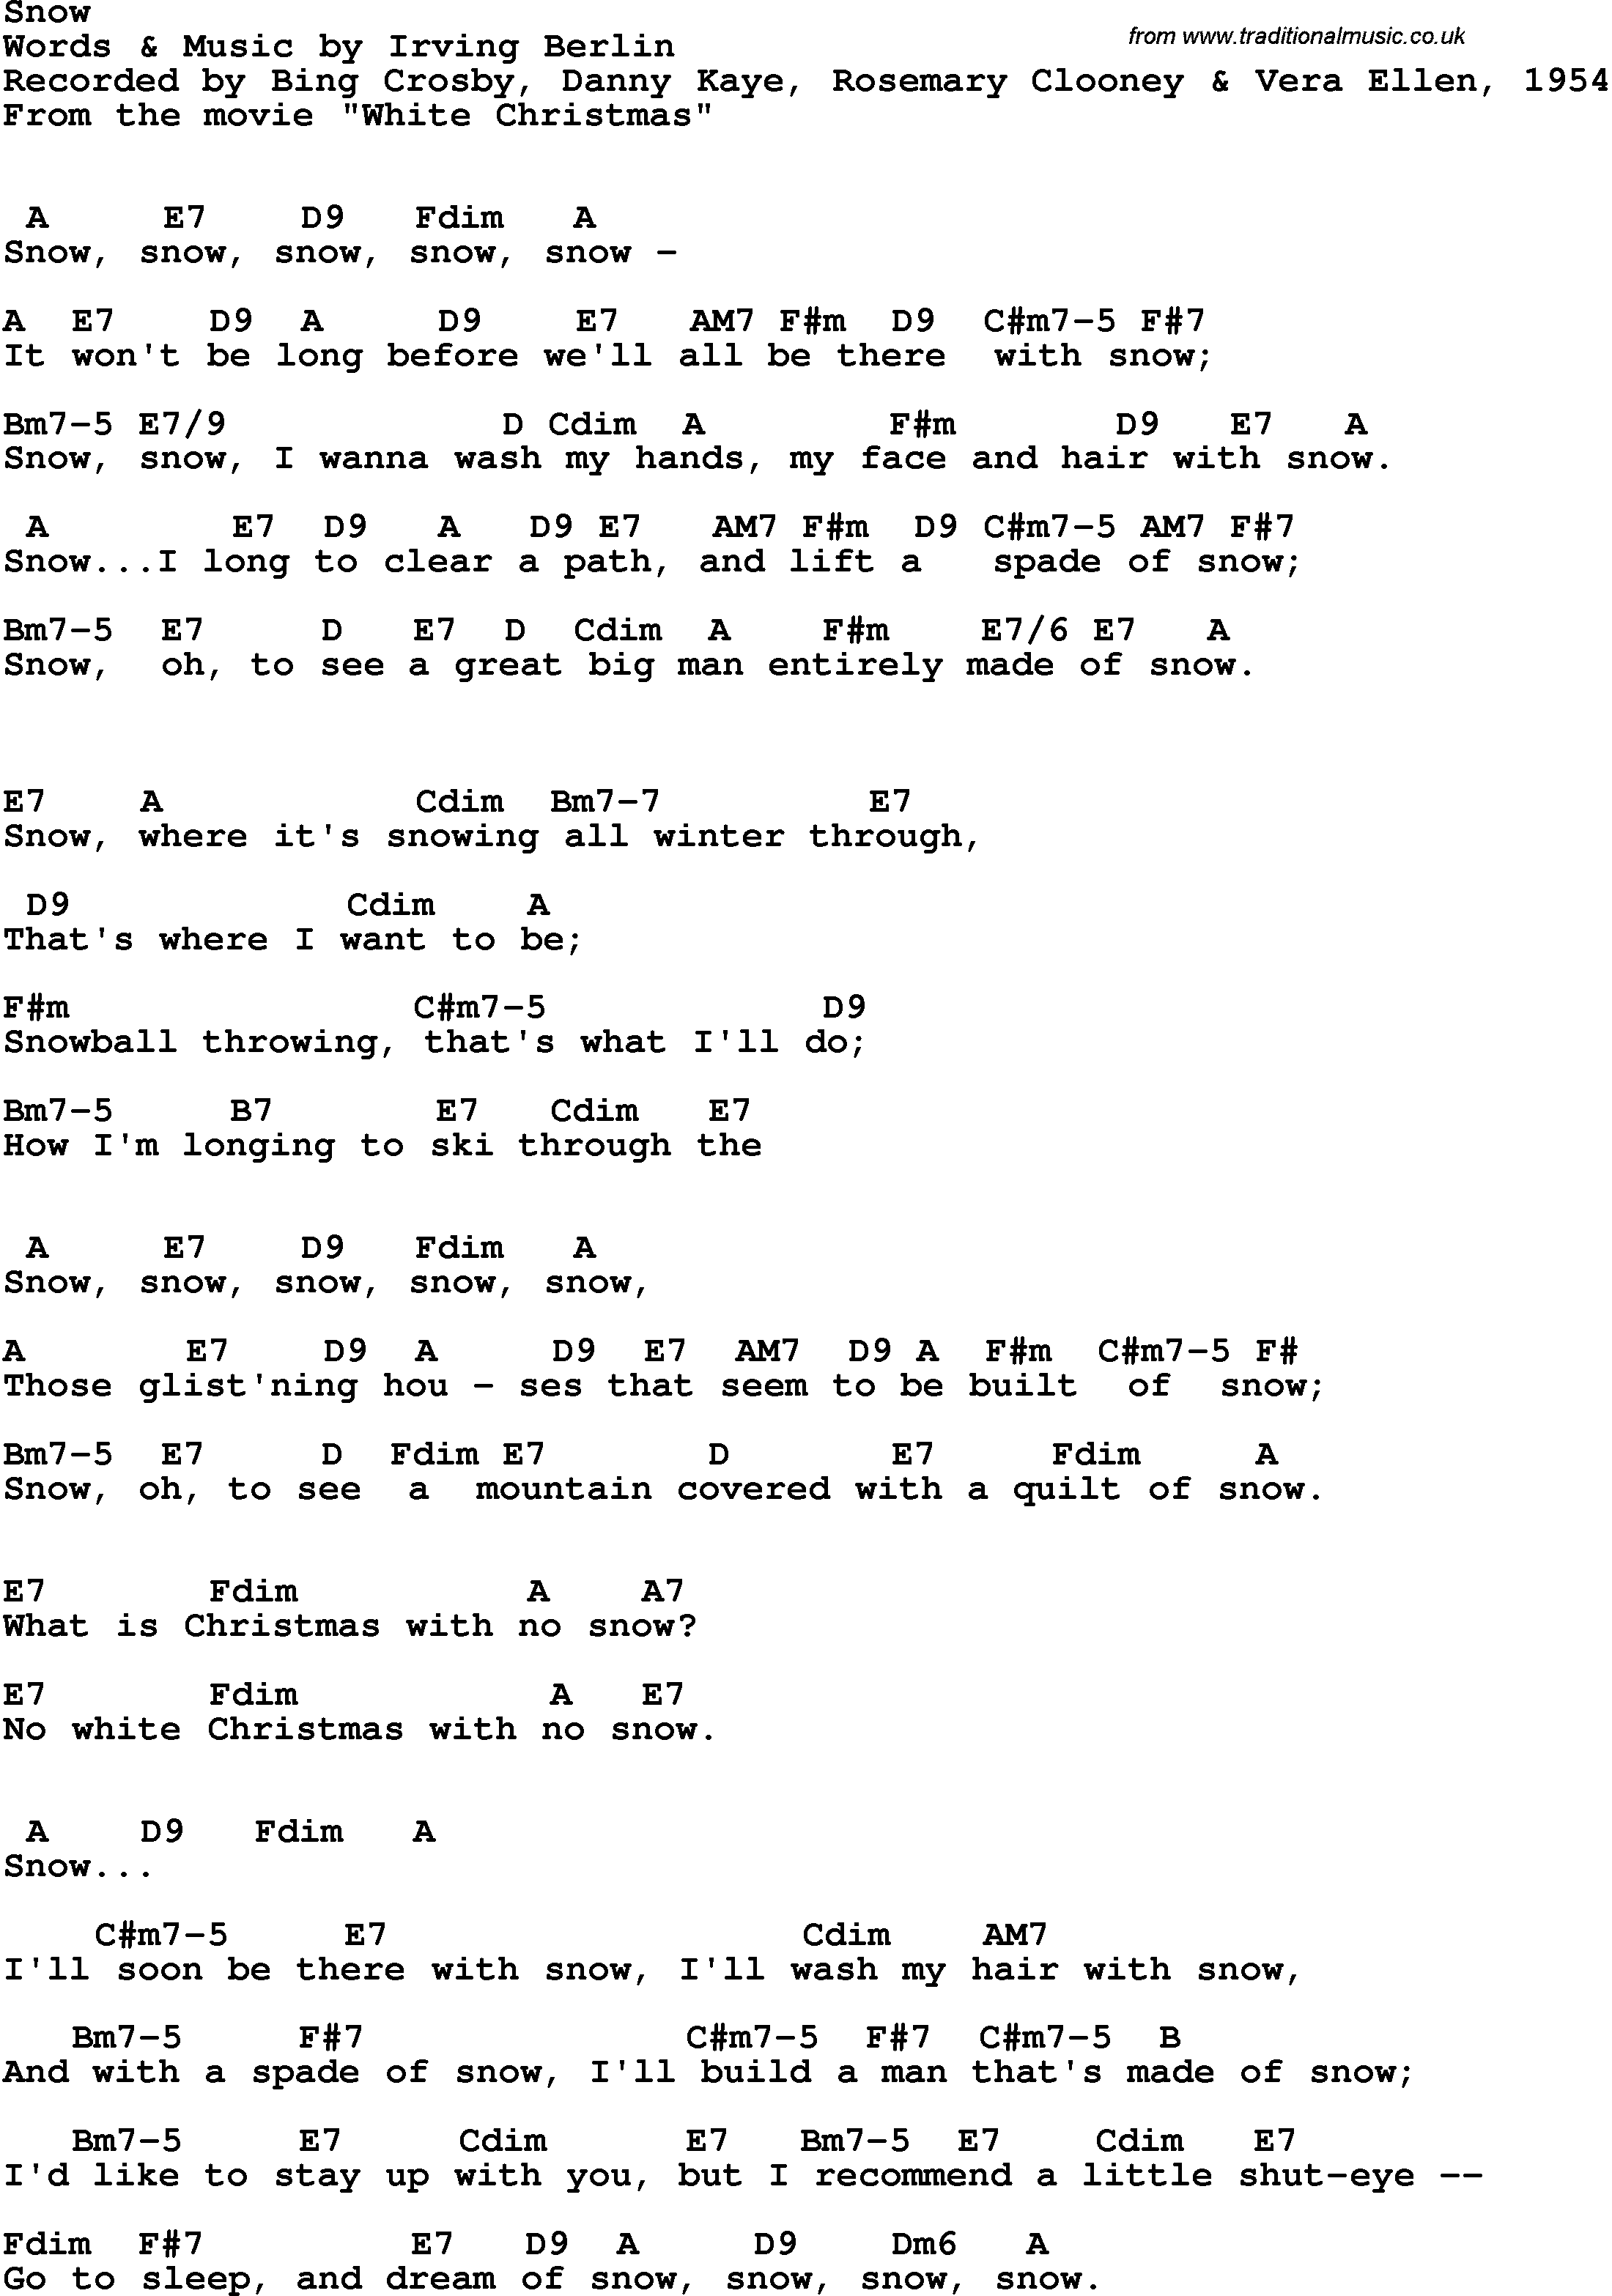 Song Lyrics with guitar chords for Snow - Bing Crosby, Danny Kaye ...